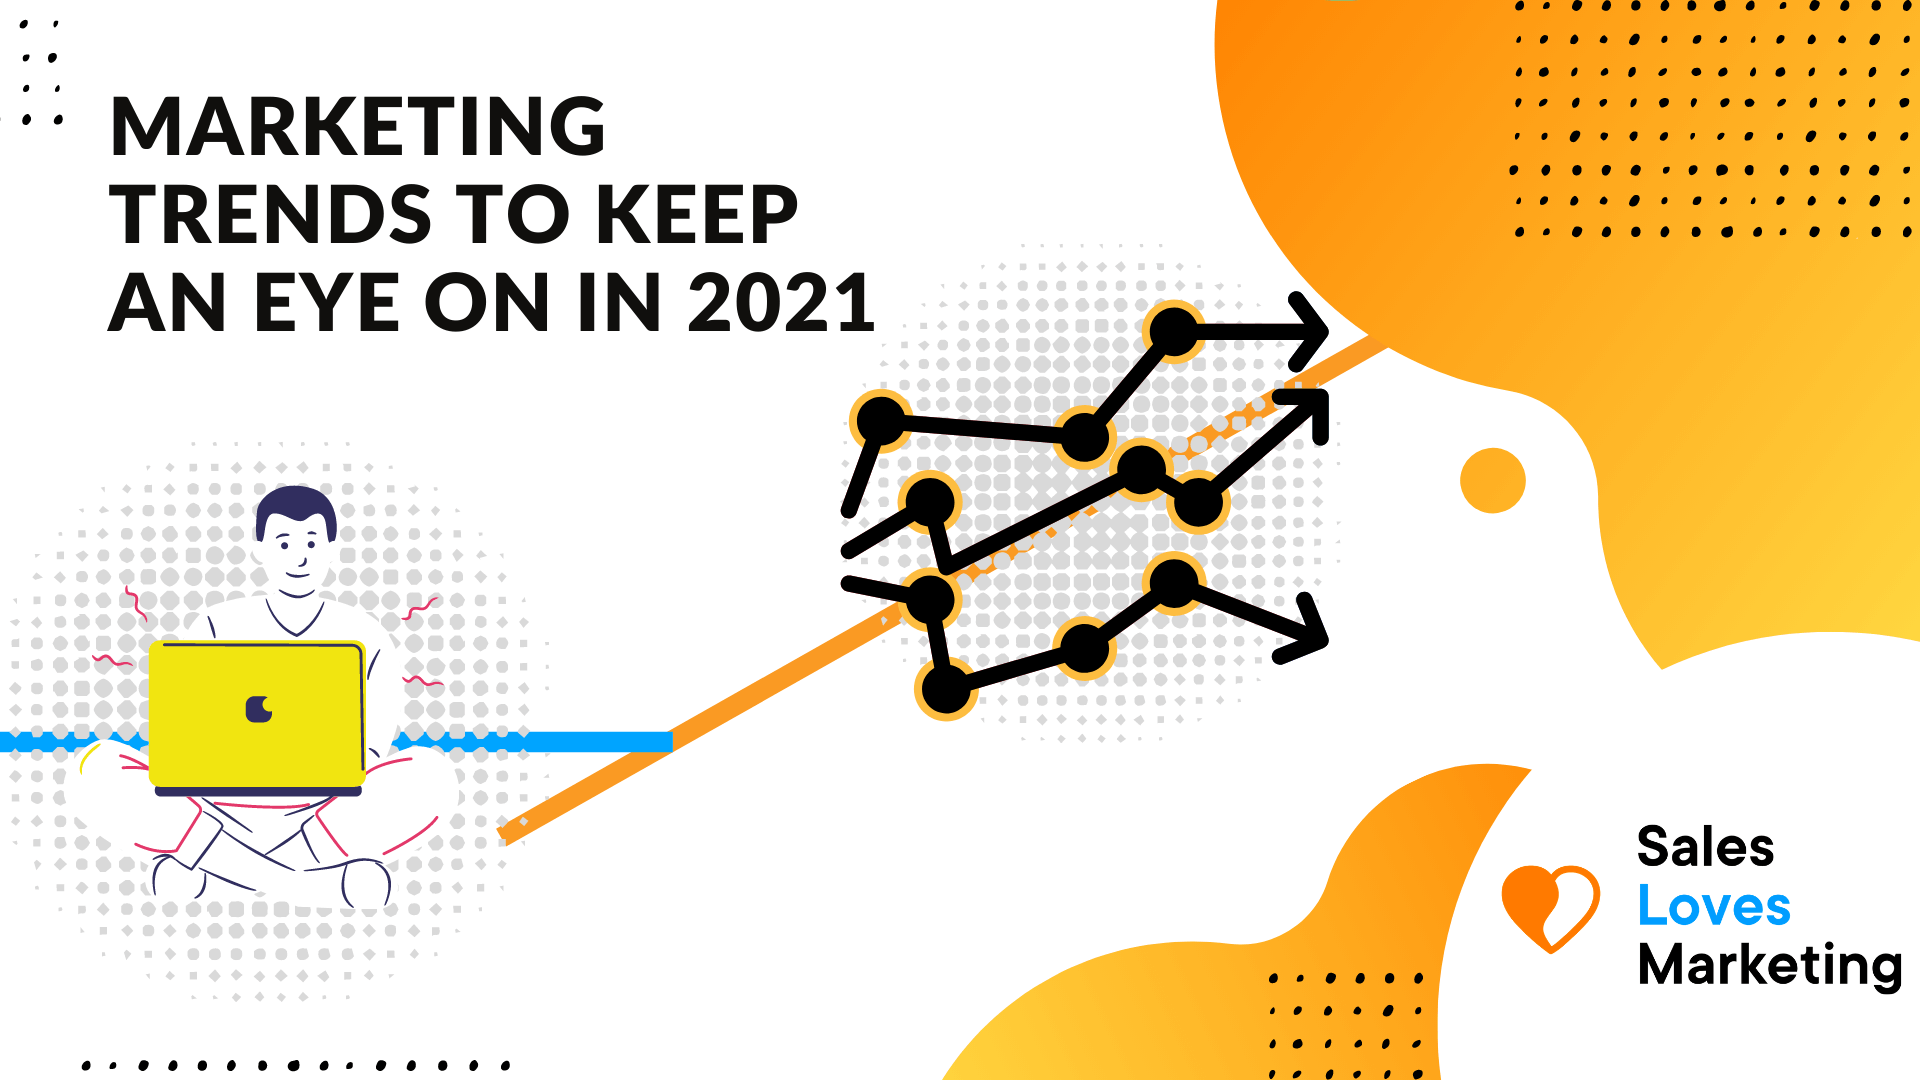 Marketing trends to keep an eye out for 2021.